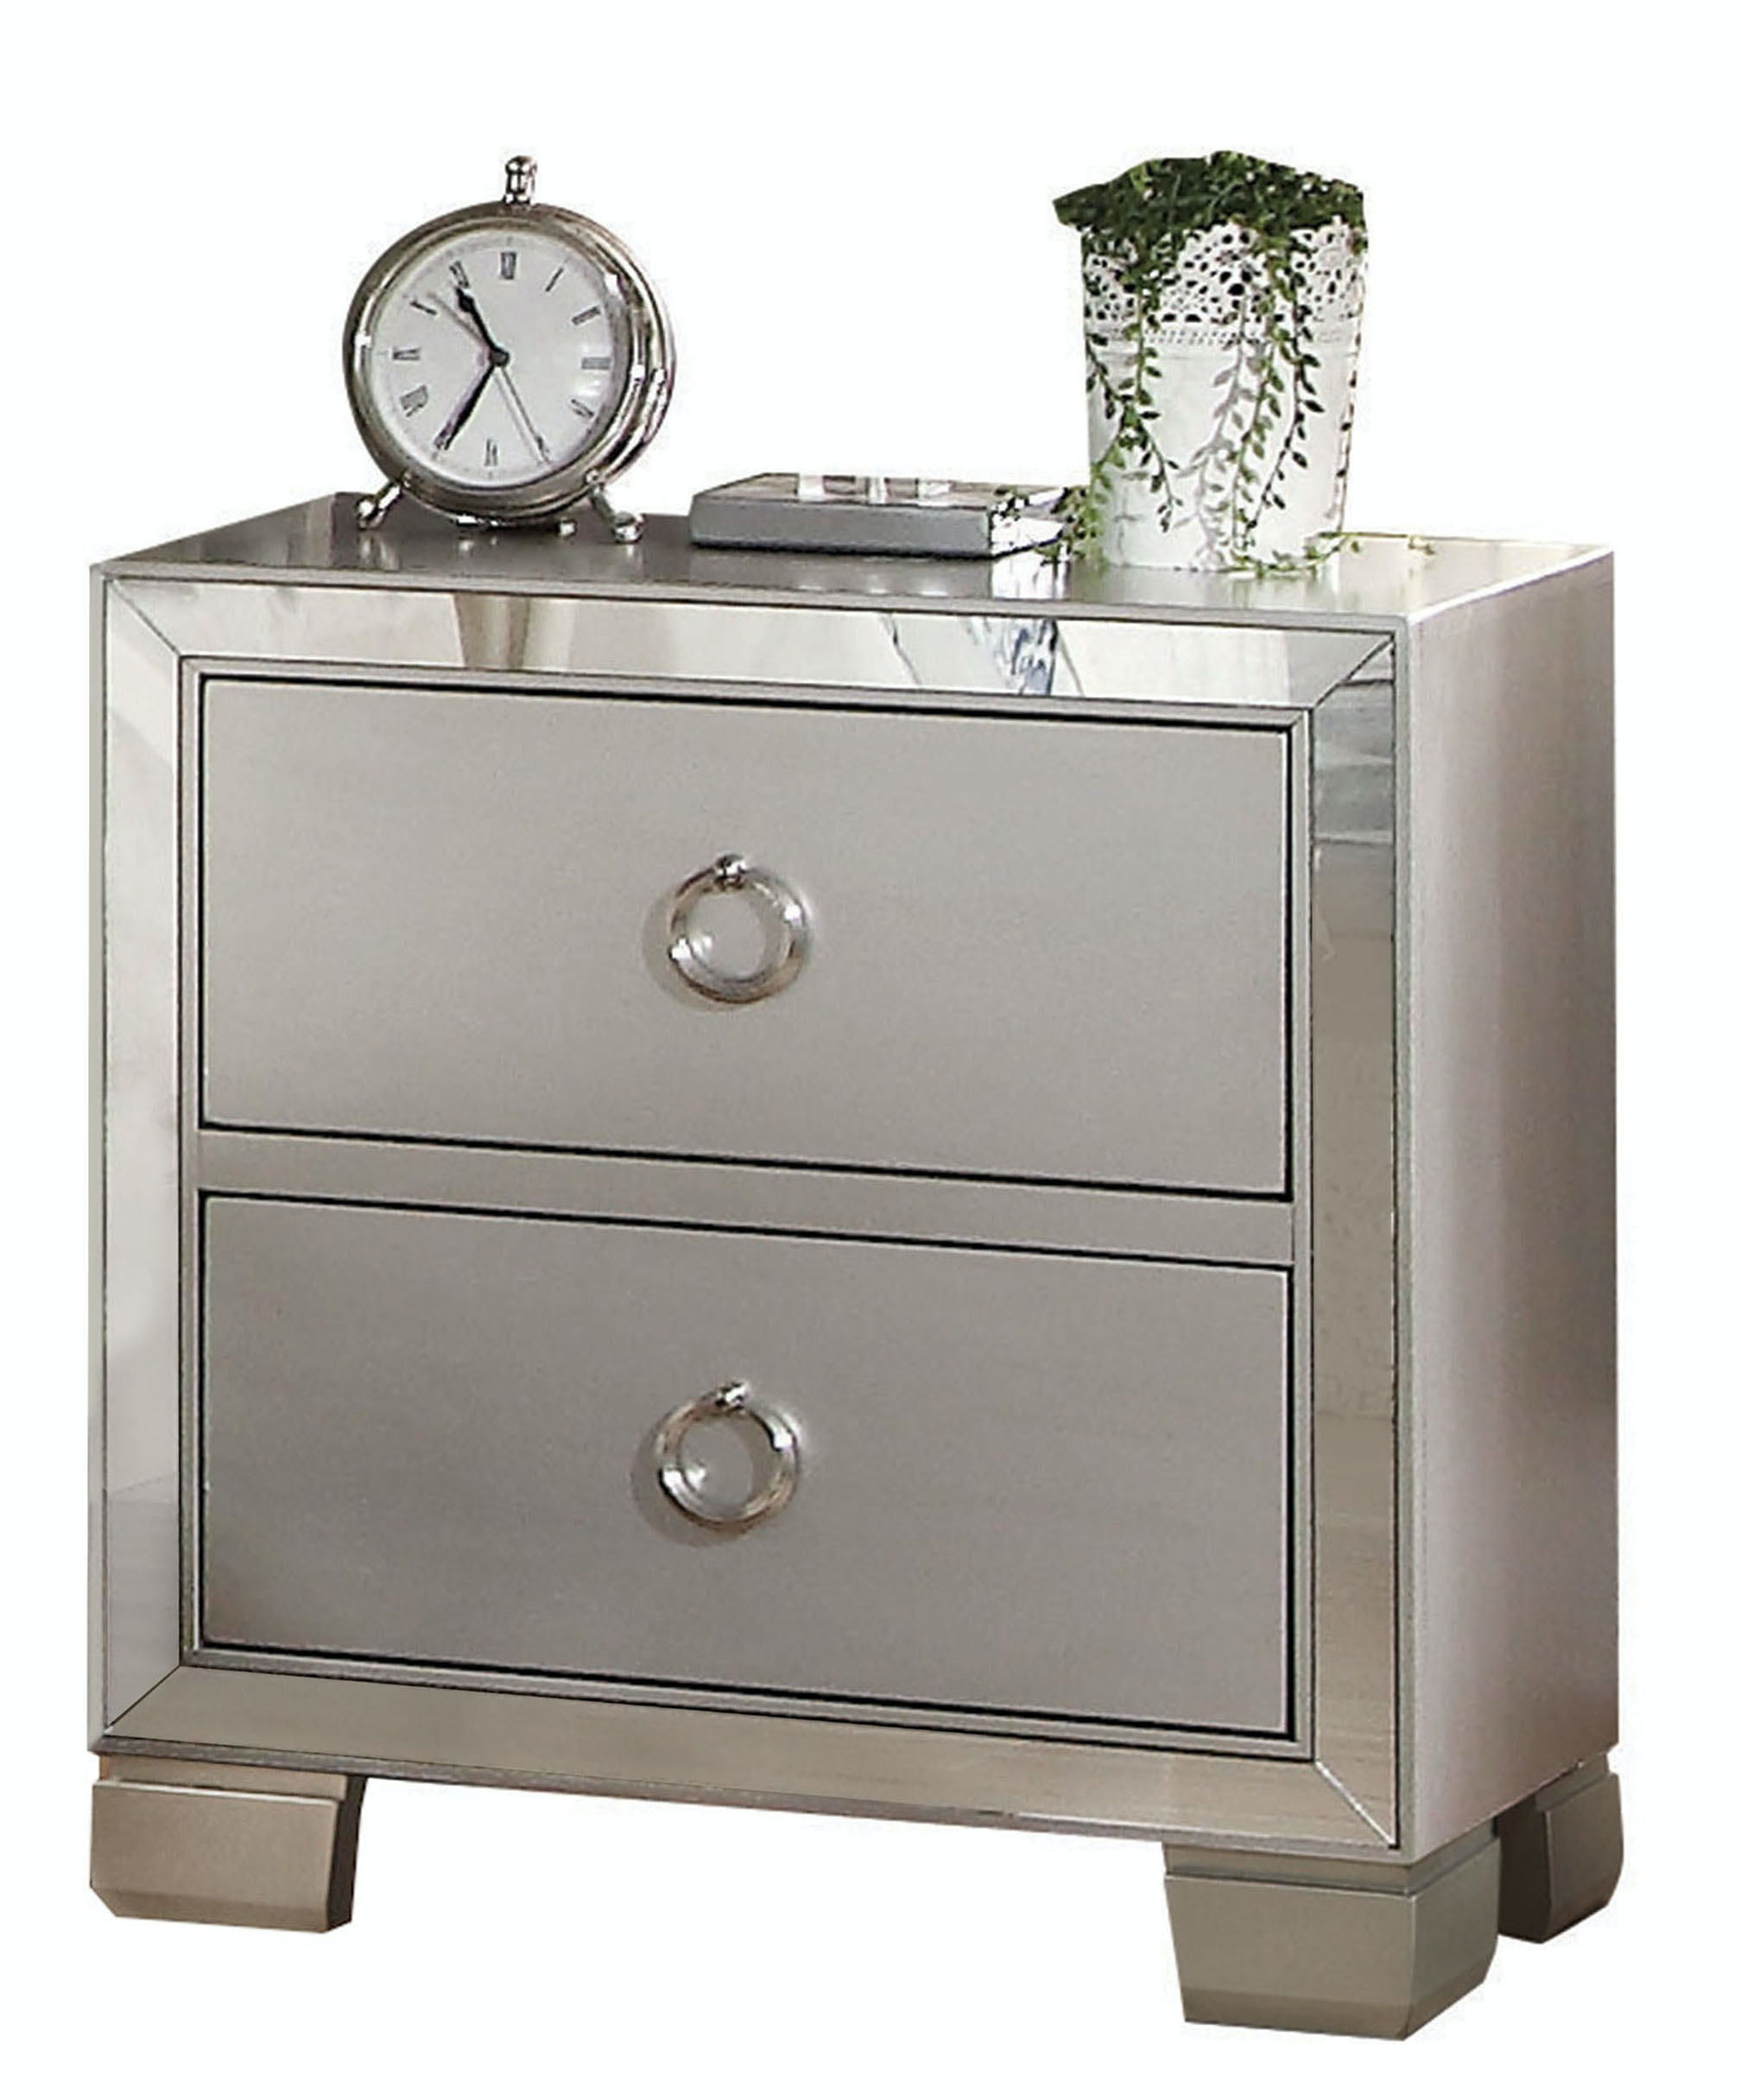 Acme Furniture Bedroom Voeville II Nightstand 24843   Simply Discount  Furniture   Santa Clarita And Valencia, CA